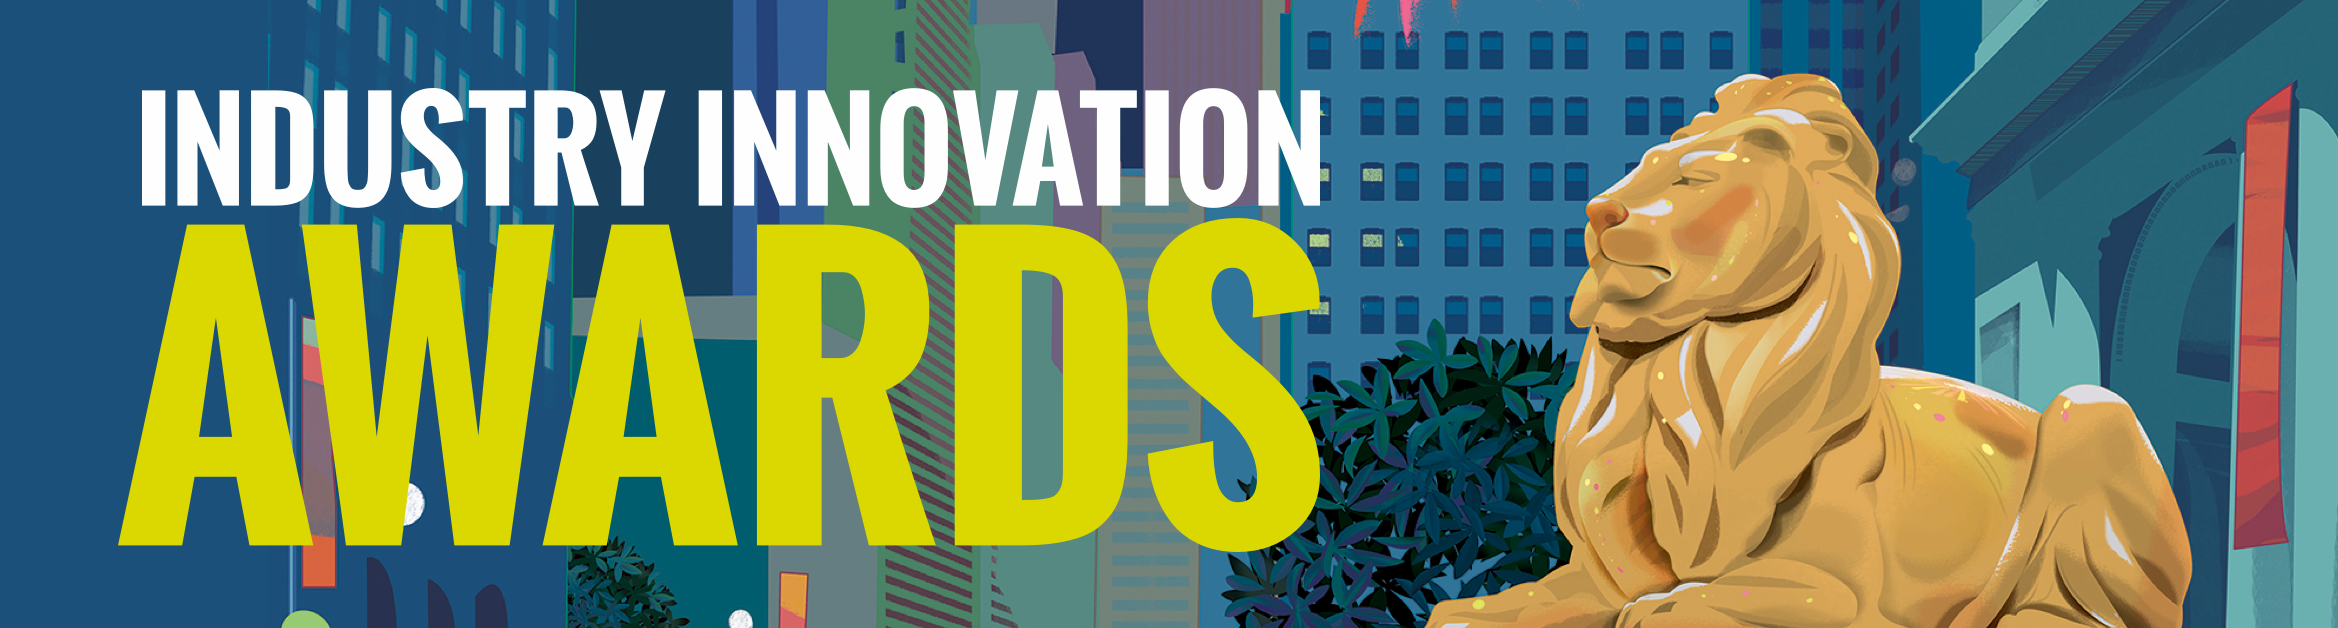 2019 Industry Innovation Awards